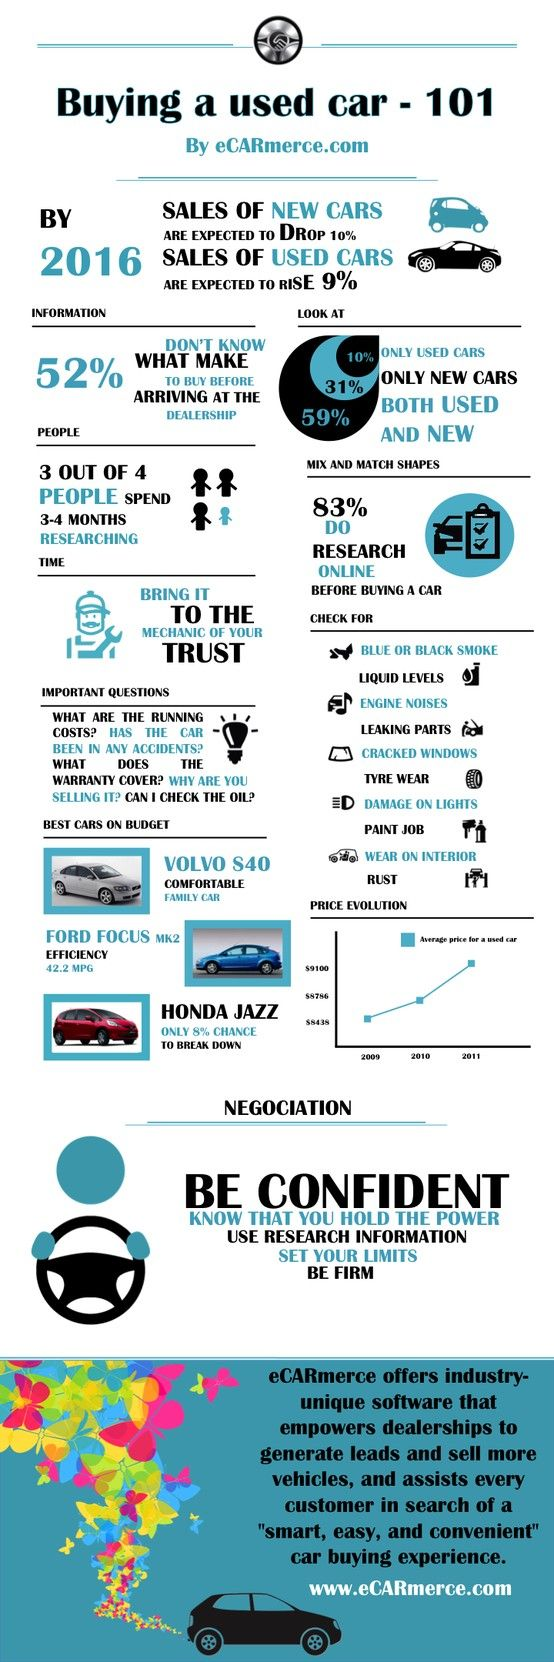 educational infographic how to buy a used car tips on how to get a good deal and what to a. Black Bedroom Furniture Sets. Home Design Ideas